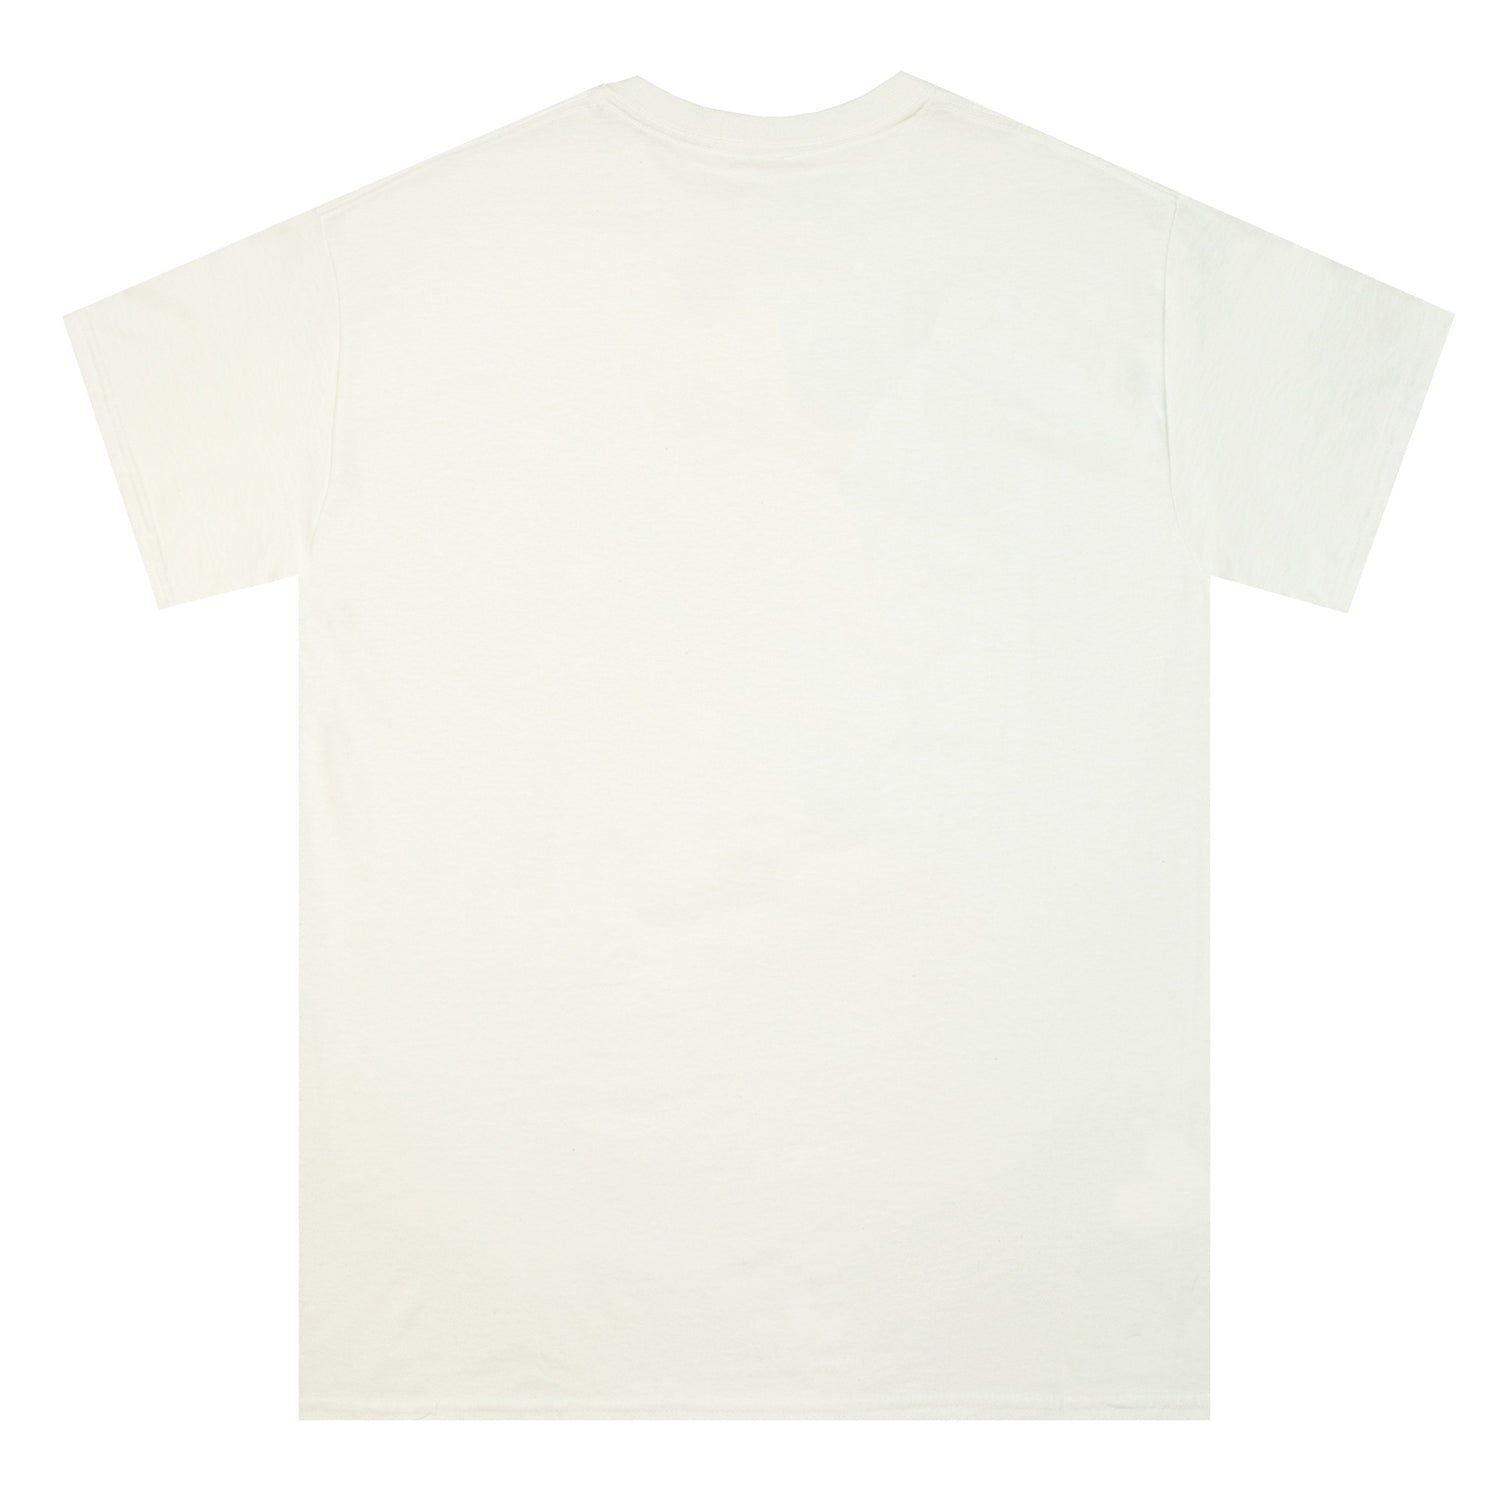 "Fool's Gold ""Psych Piano"" Tee - White"